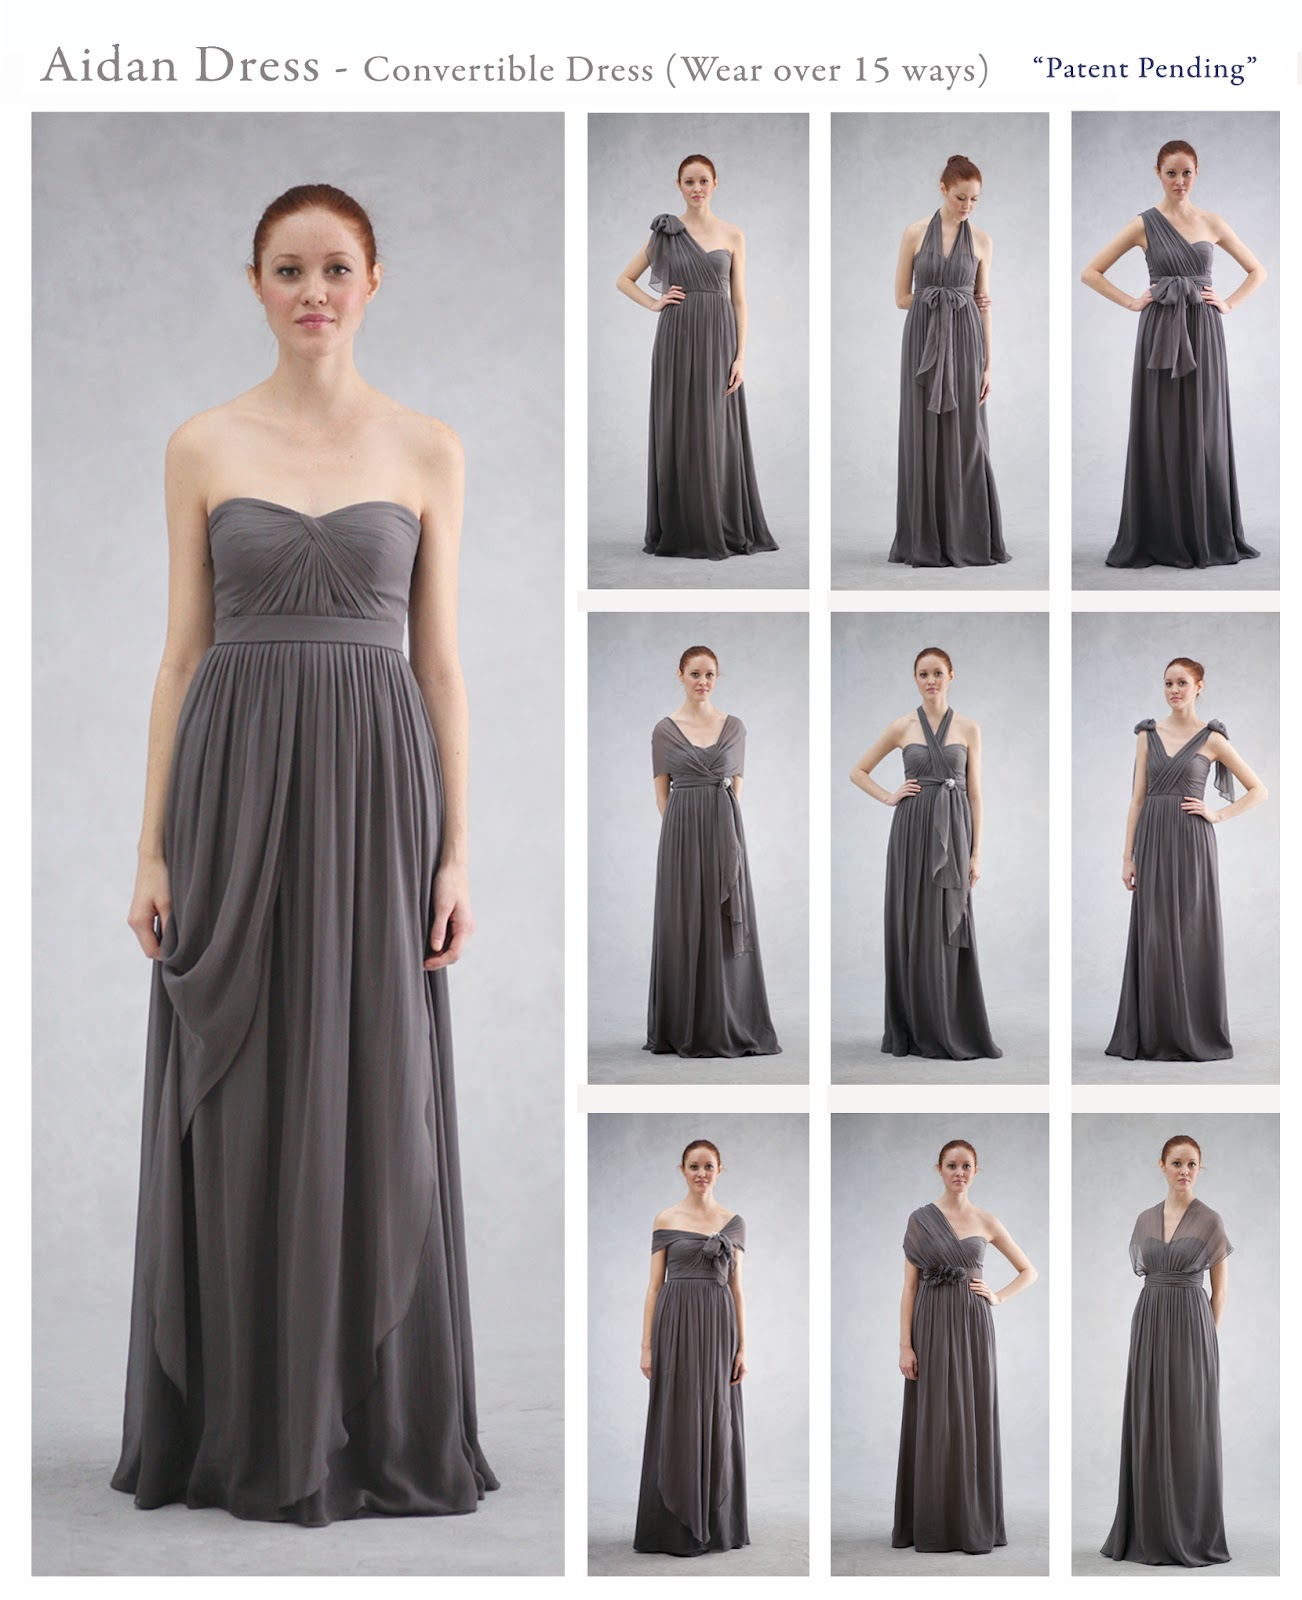 Charcoal chiffon bridesmaid dresses vosoi smoky charcoal jcrew silk chiffon wedding pinterest utah ombrellifo Choice Image